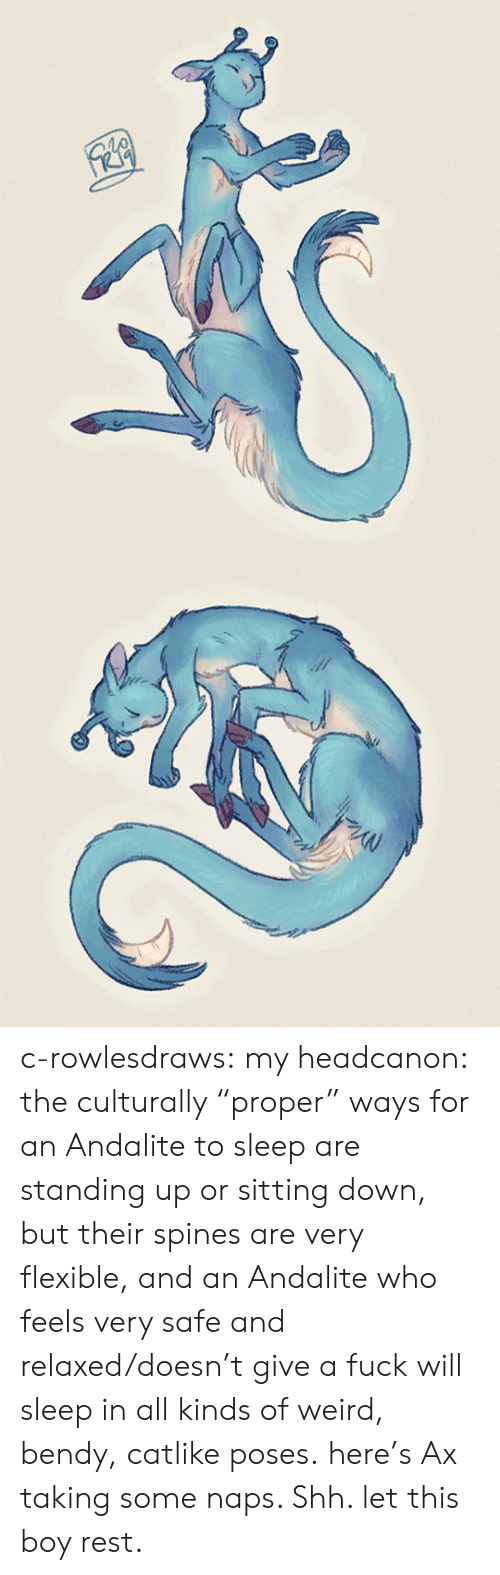 """Give A Fuck: c-rowlesdraws: my headcanon: the culturally """"proper"""" ways for an Andalite to sleep are standing up or sitting down, but their spines are very flexible, and an Andalite who feels very safe and relaxed/doesn't give a fuck will sleep in all kinds of weird, bendy, catlike poses. here's Ax taking some naps. Shh. let this boy rest."""